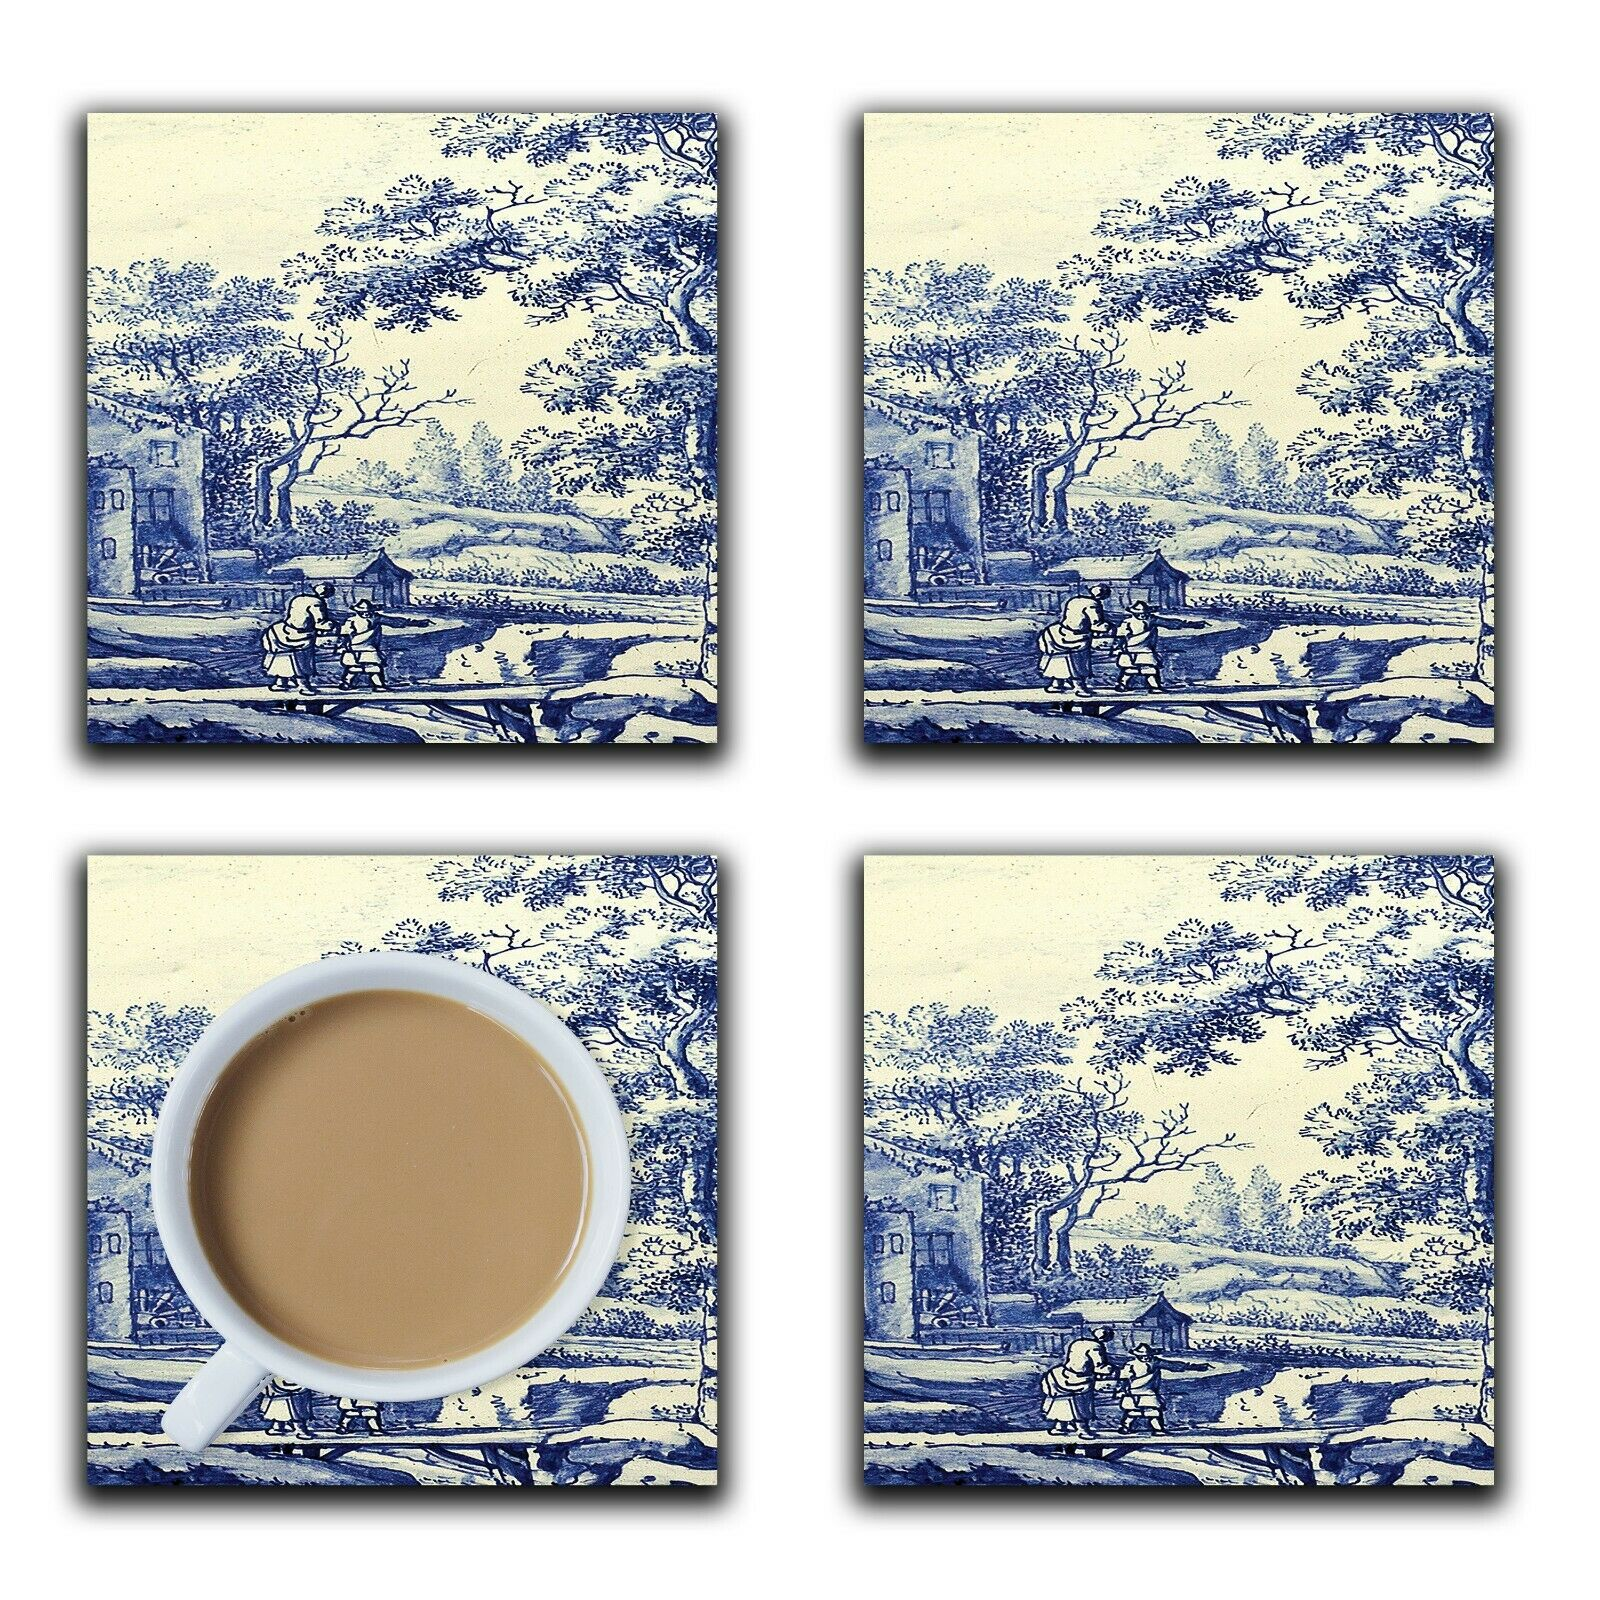 Embossi Printed Delft Blue and White Pattern, wood or ceramic tile, set of 4